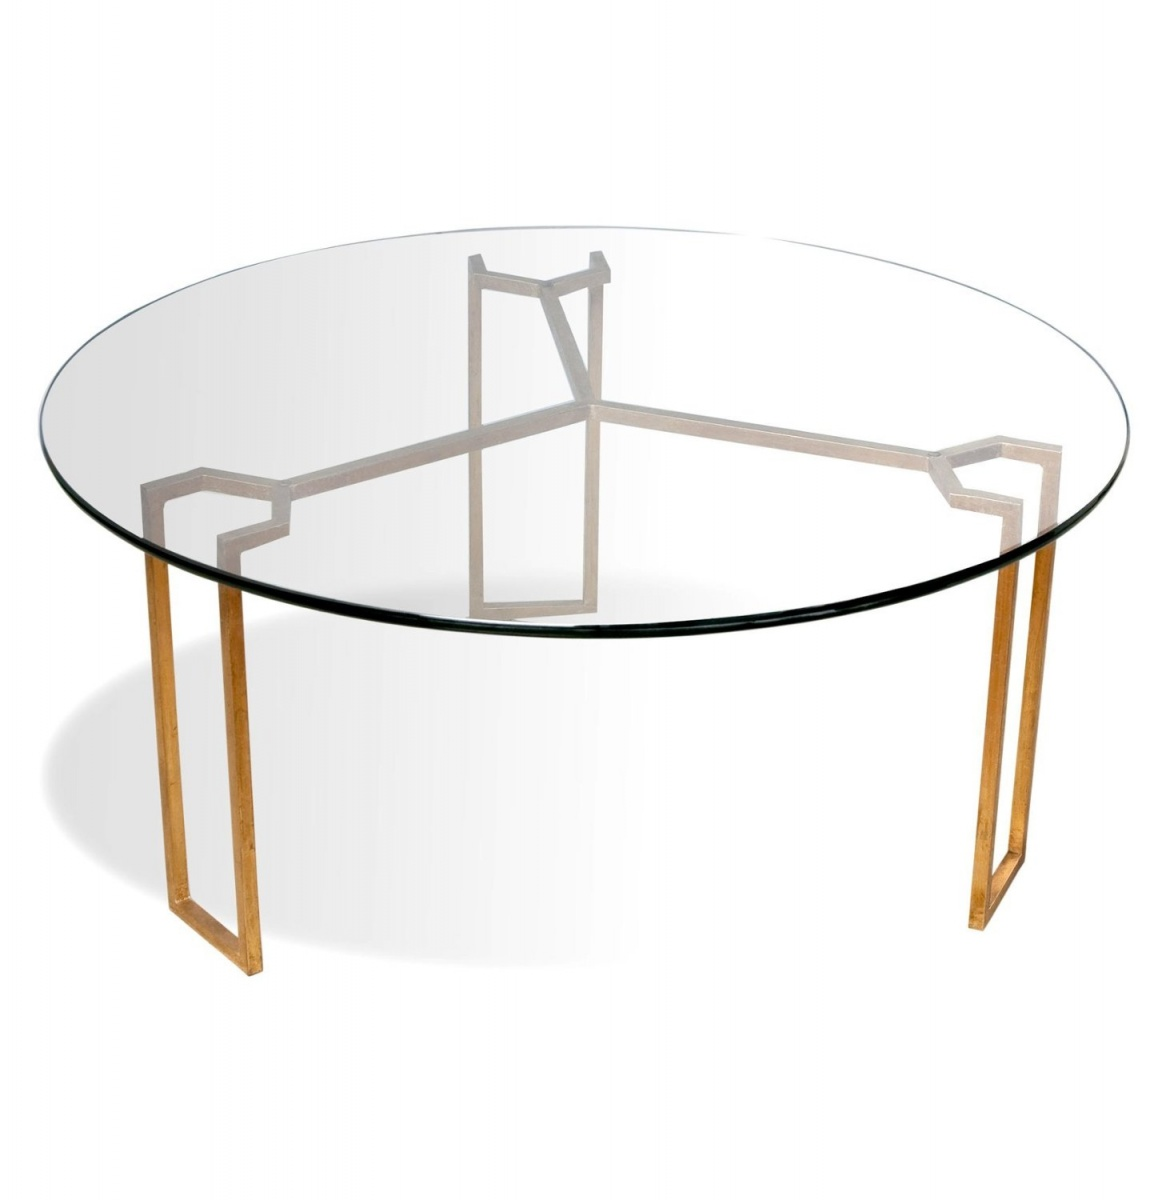 Small Round Glass Coffee Table Small Round Coffee Table Sets Small Coffee Tables For Small Spaces (View 10 of 10)